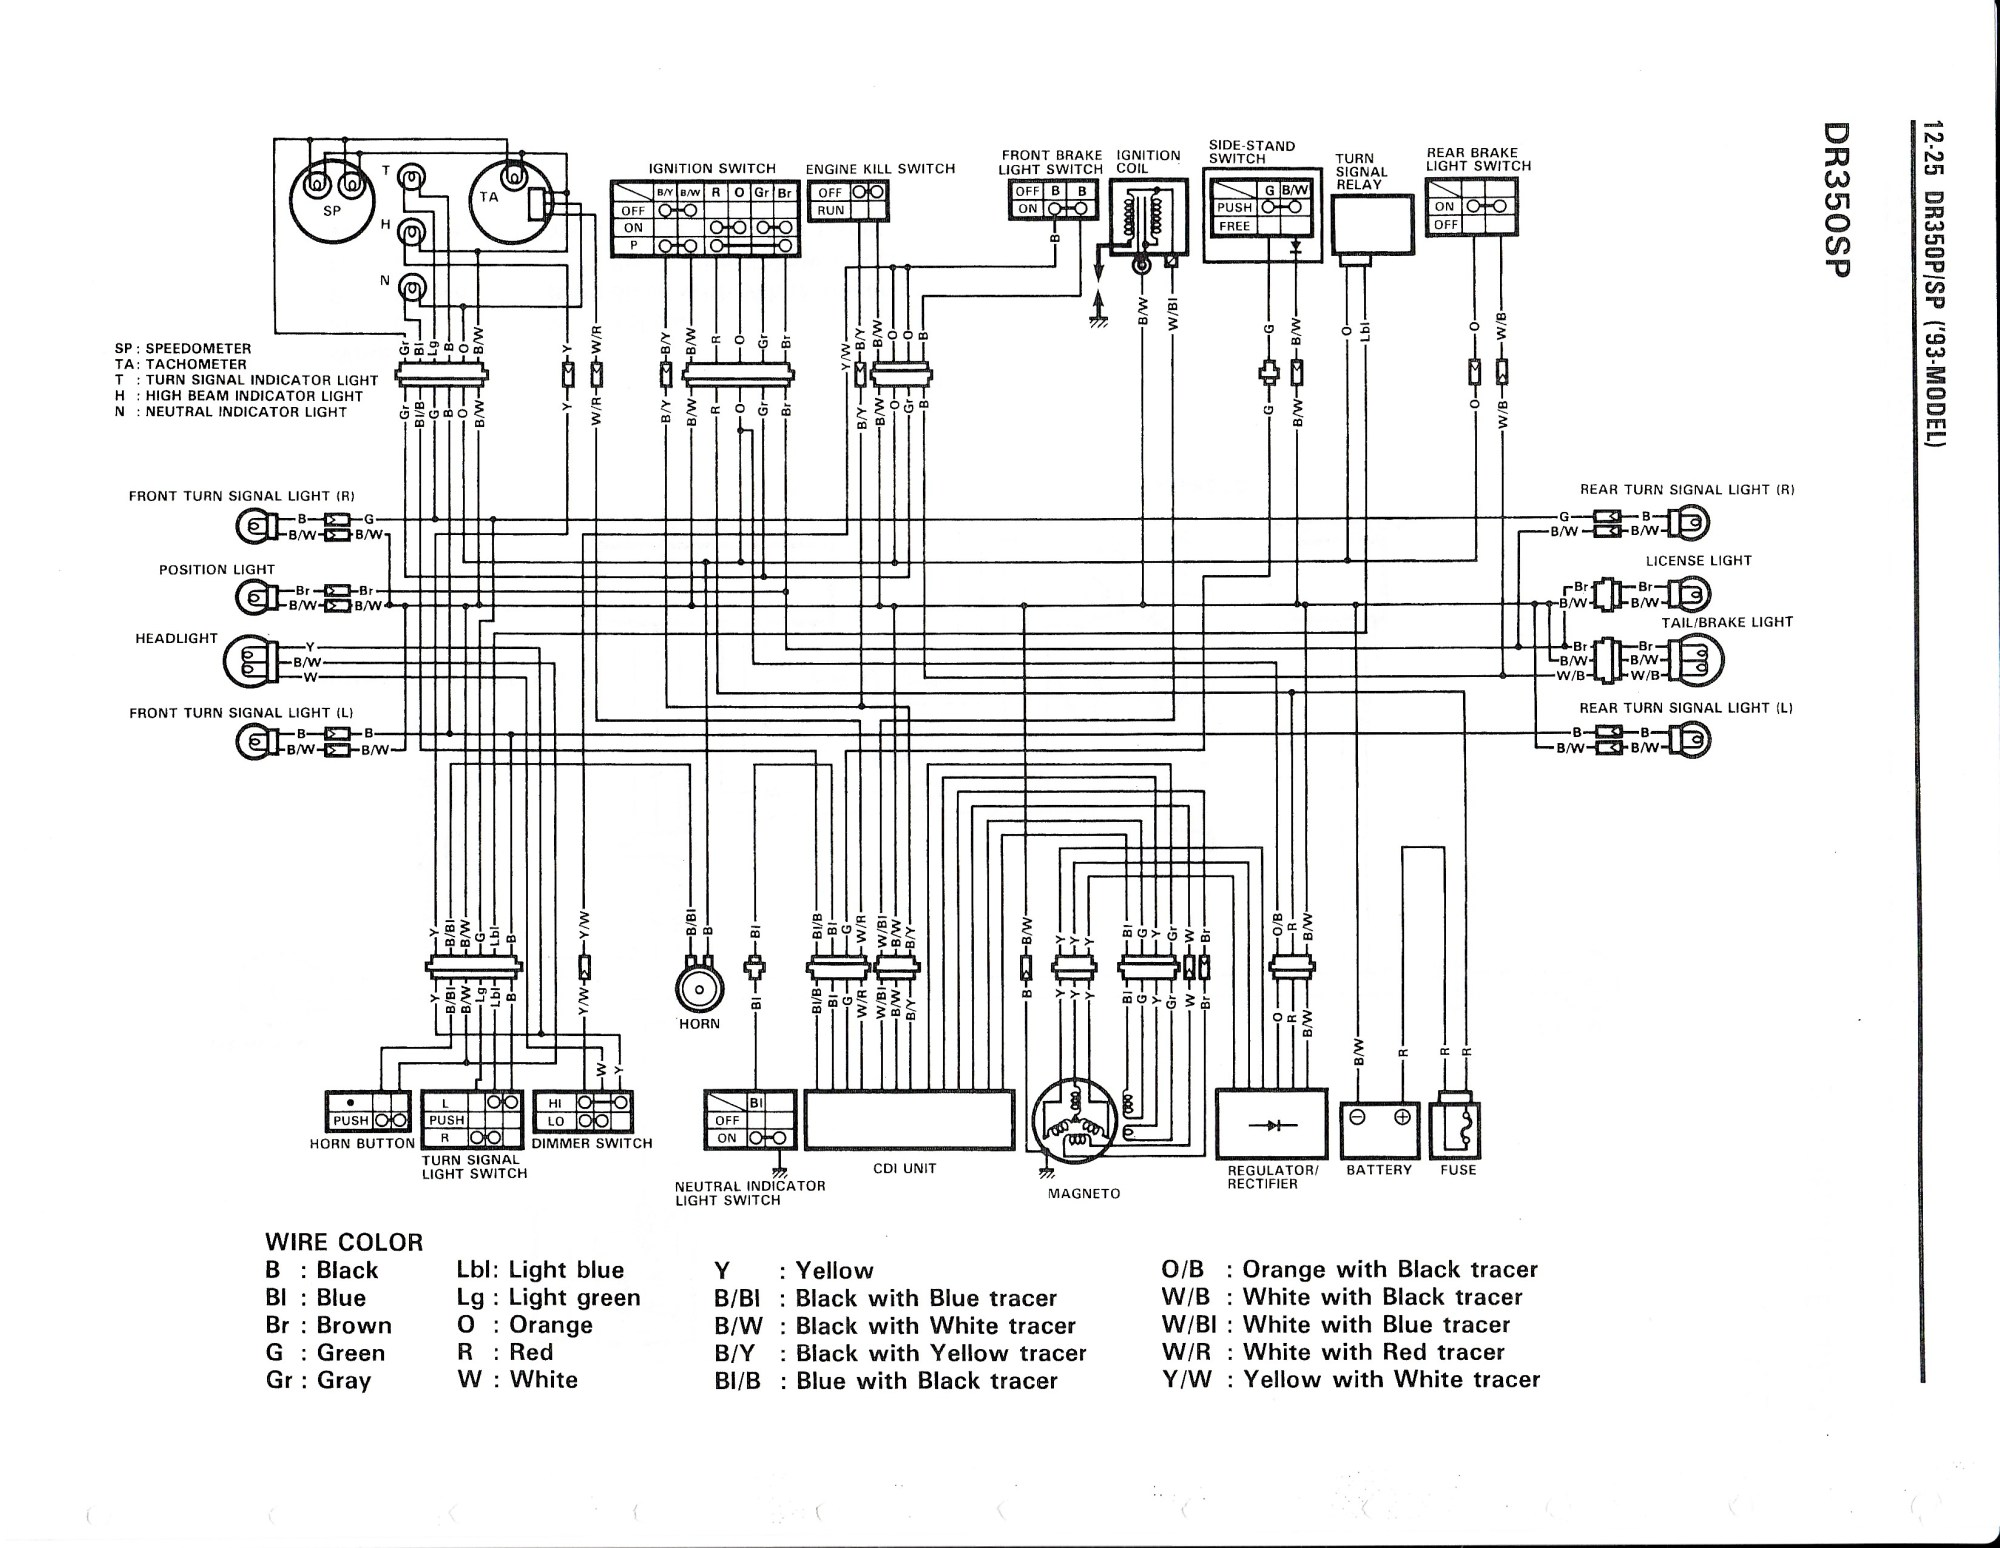 hight resolution of wiring diagram for the dr350 s 1993 and later models suzuki suzuki gsx600f wiring